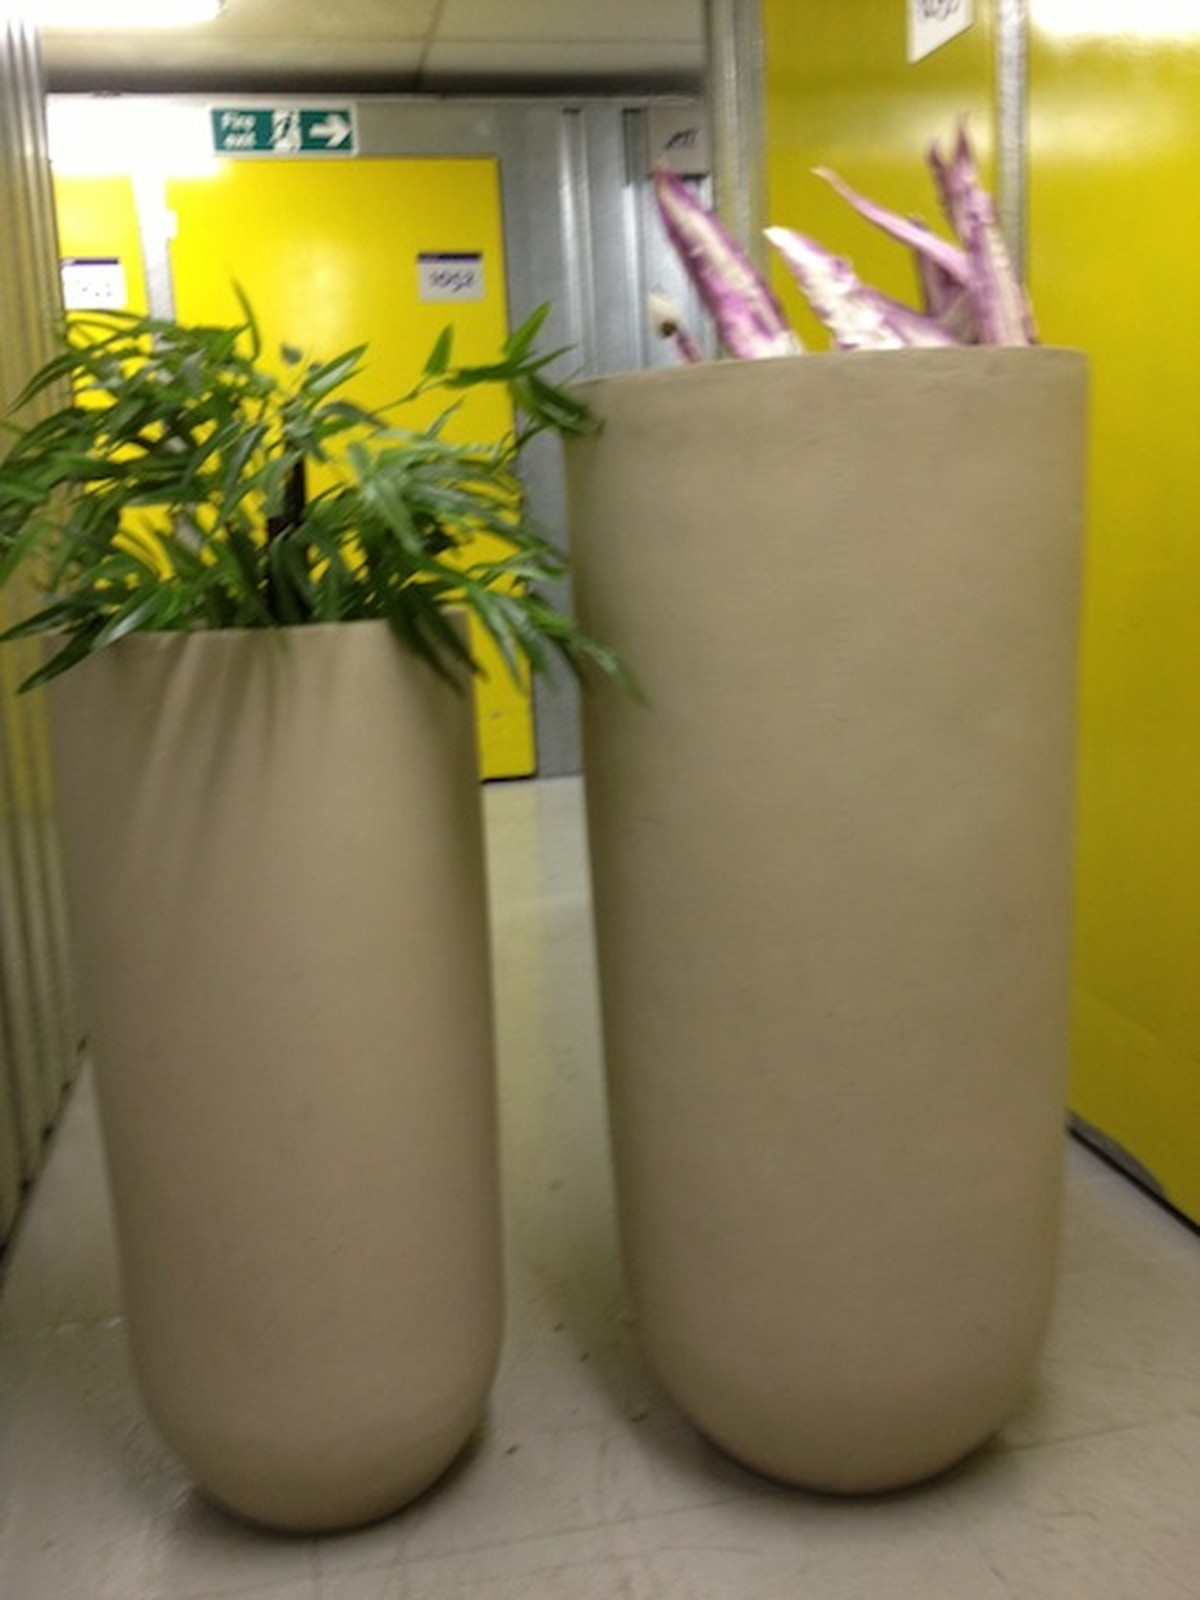 Flower Pots For Sale Secondhand Pub Equipment Ornamental And Decorative